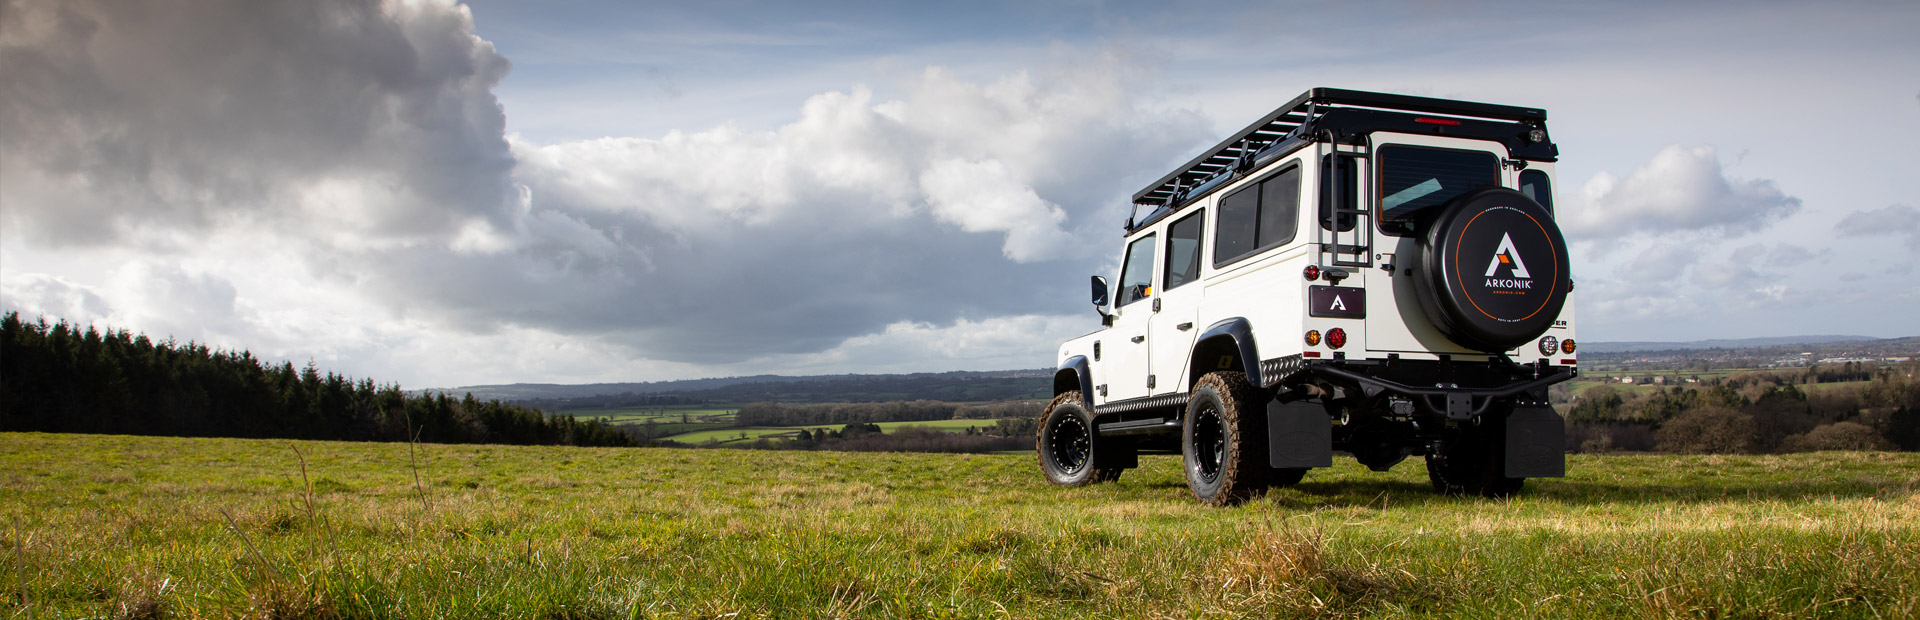 Arkonik Scale - Custom built Land Rover Defender 110